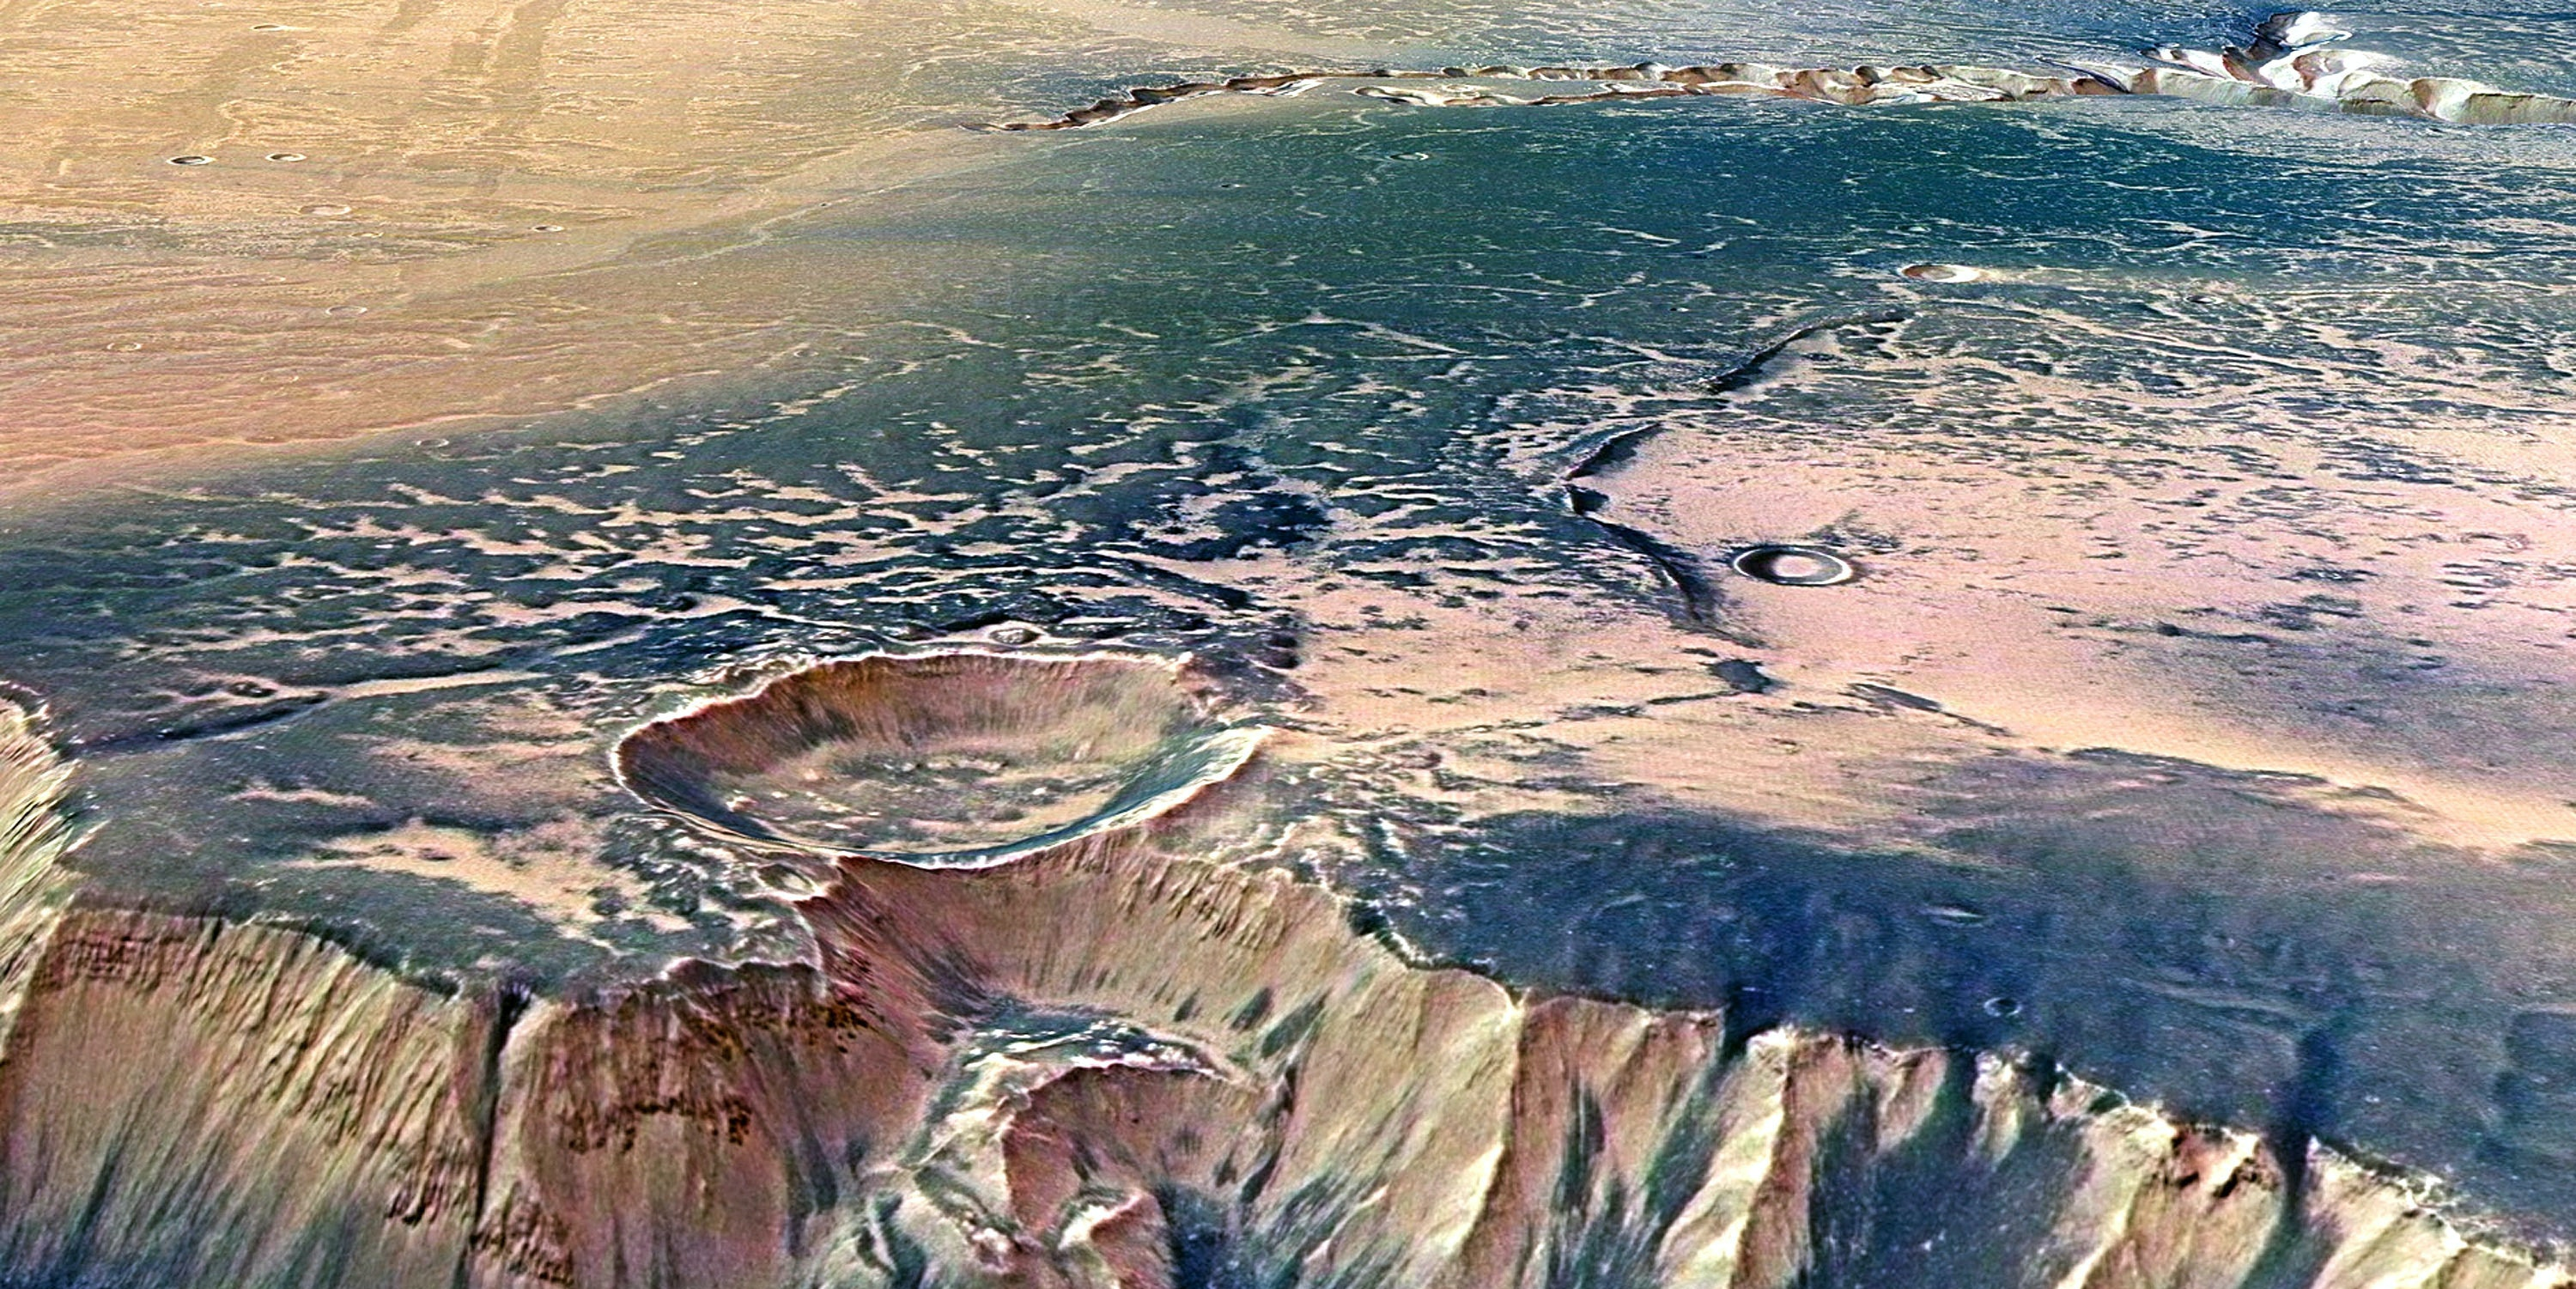 IN SPACE  - JULY 16:  In this handout image supplied by the European Space Agency (ESA) on July 16, 2008, The Echus Chasma, one of the largest water source regions on Mars, is pictured from ESA's Mars Express. The data was acquired on  September 25, 2005. An impressive cliff, up to 4000 m high, is located in the eastern part of Echus Chasma. Gigantic water falls may once have plunged over these cliffs on to the valley floor. The remarkably smooth valley floor was later flooded by basaltic lava.  (Photo by ESA via Getty Images)